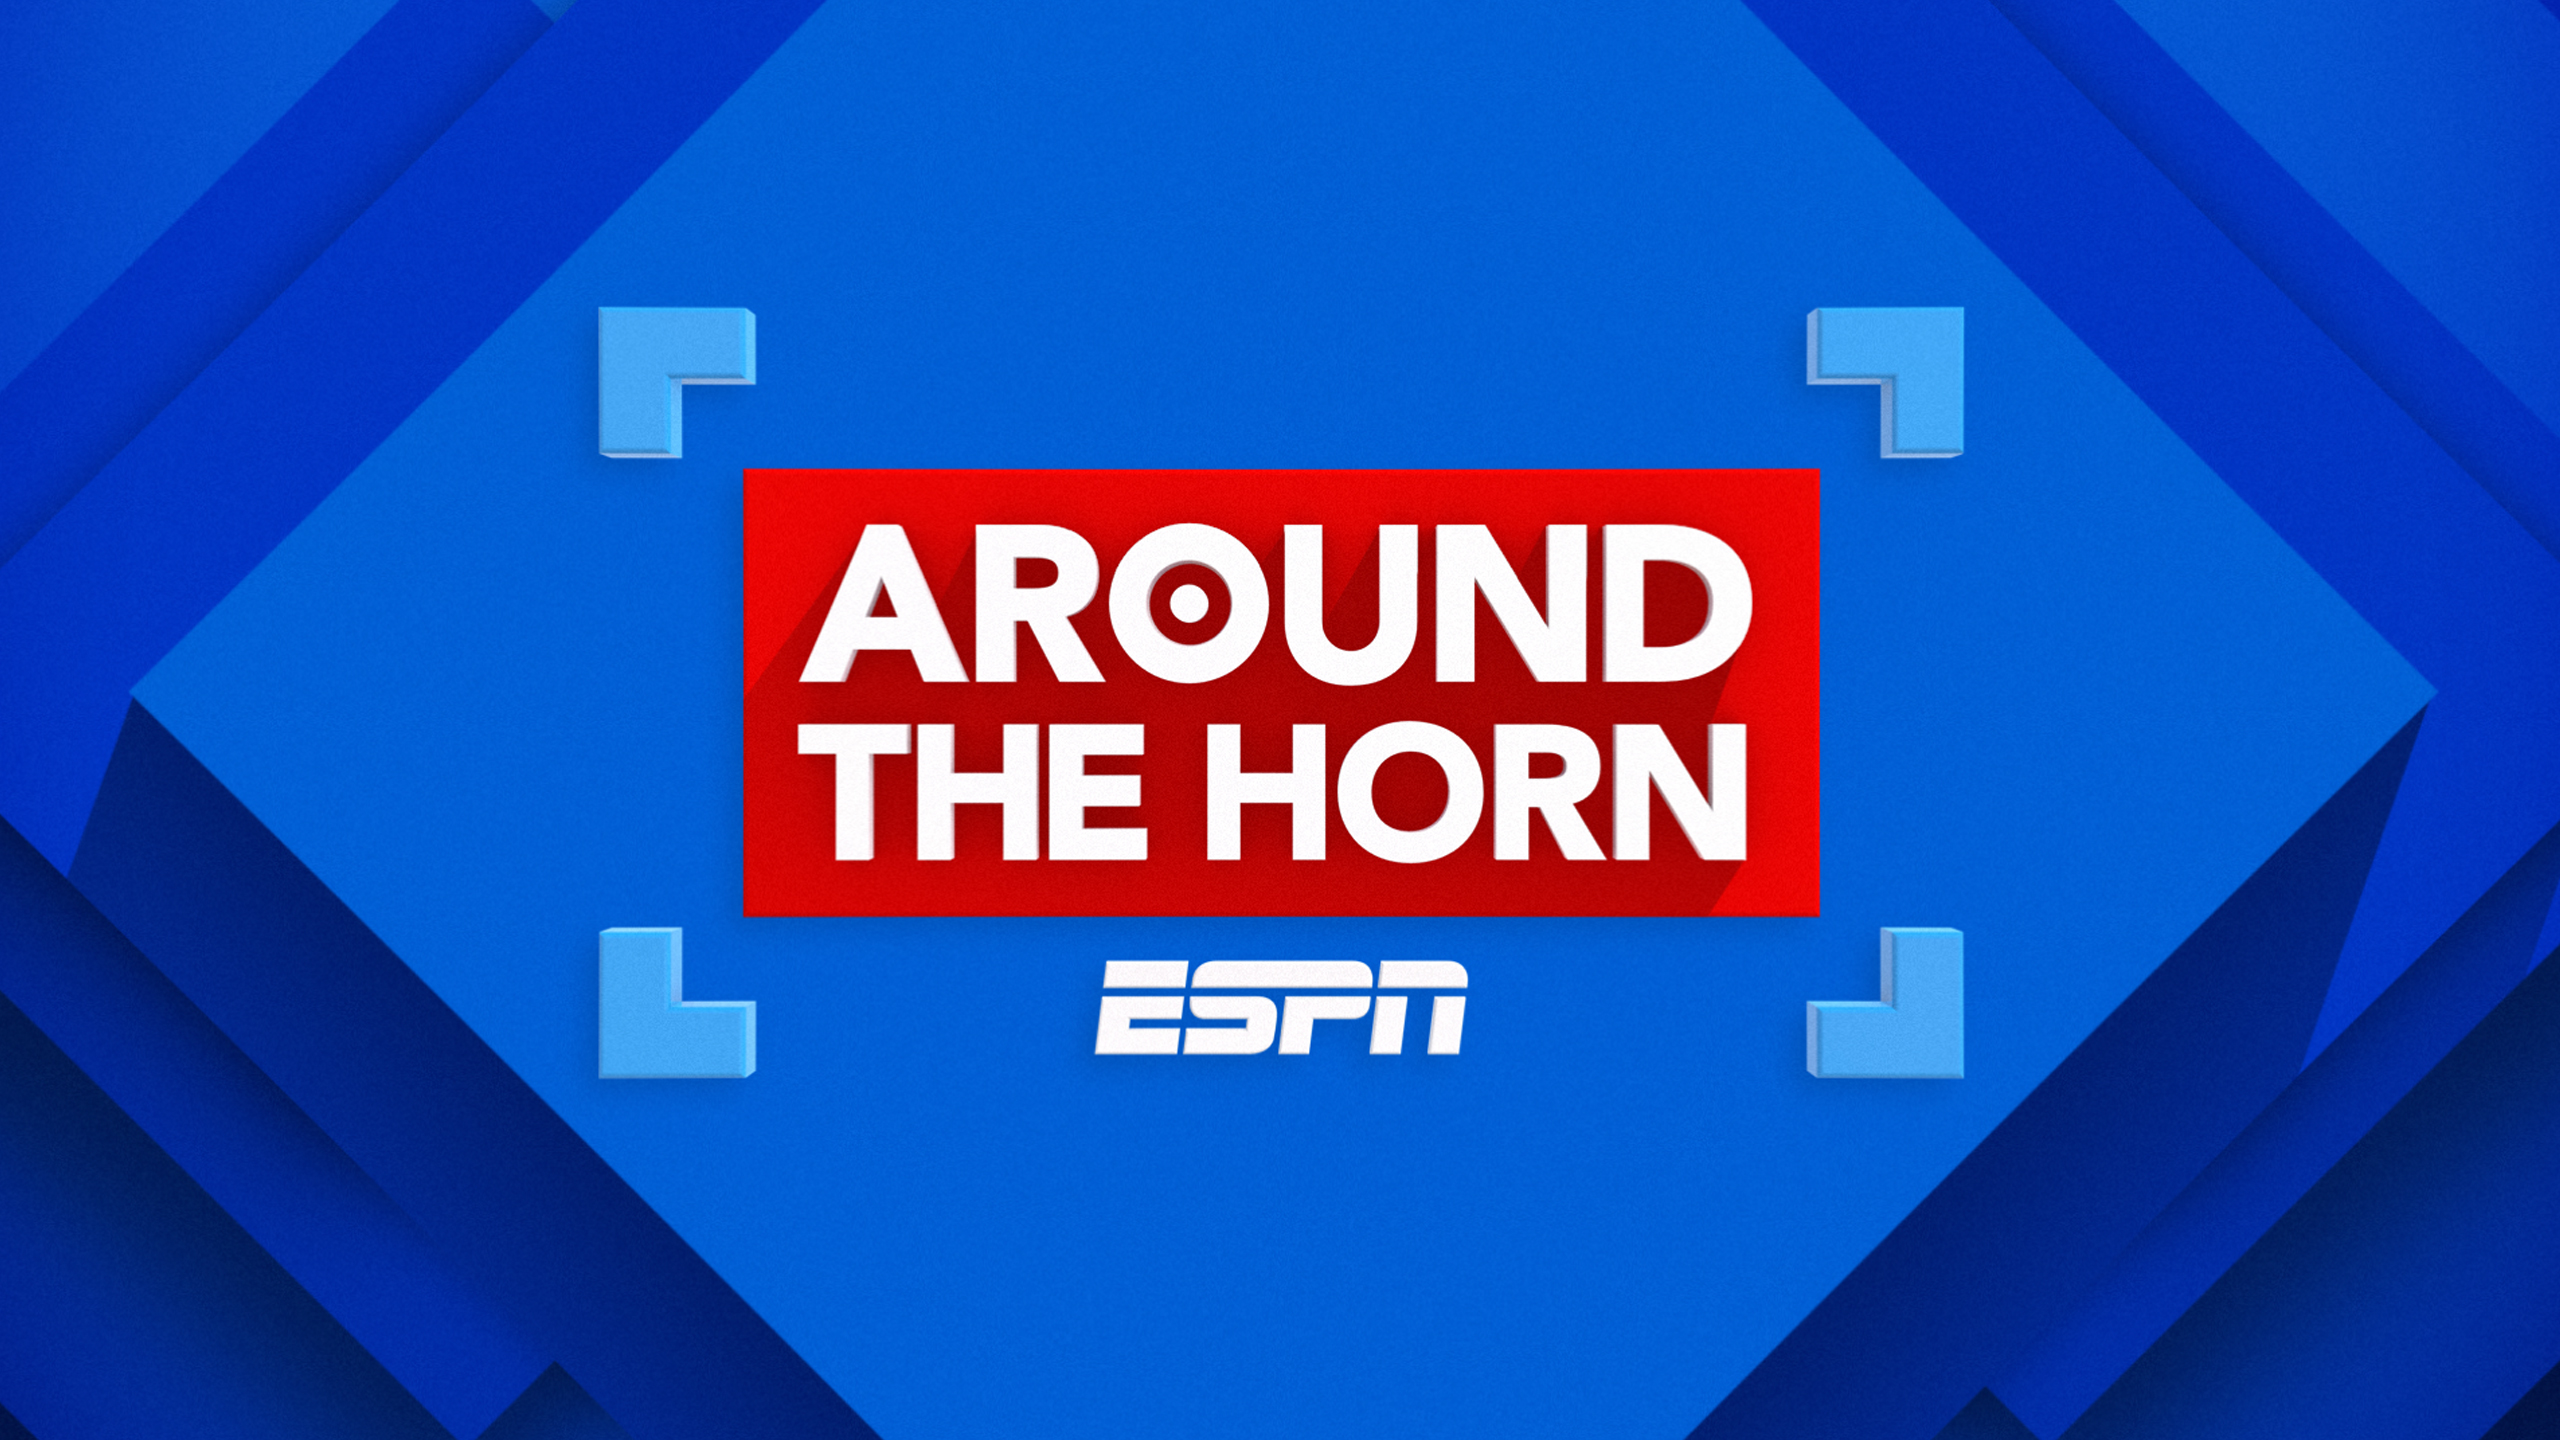 Thu, 11/15 - Around The Horn